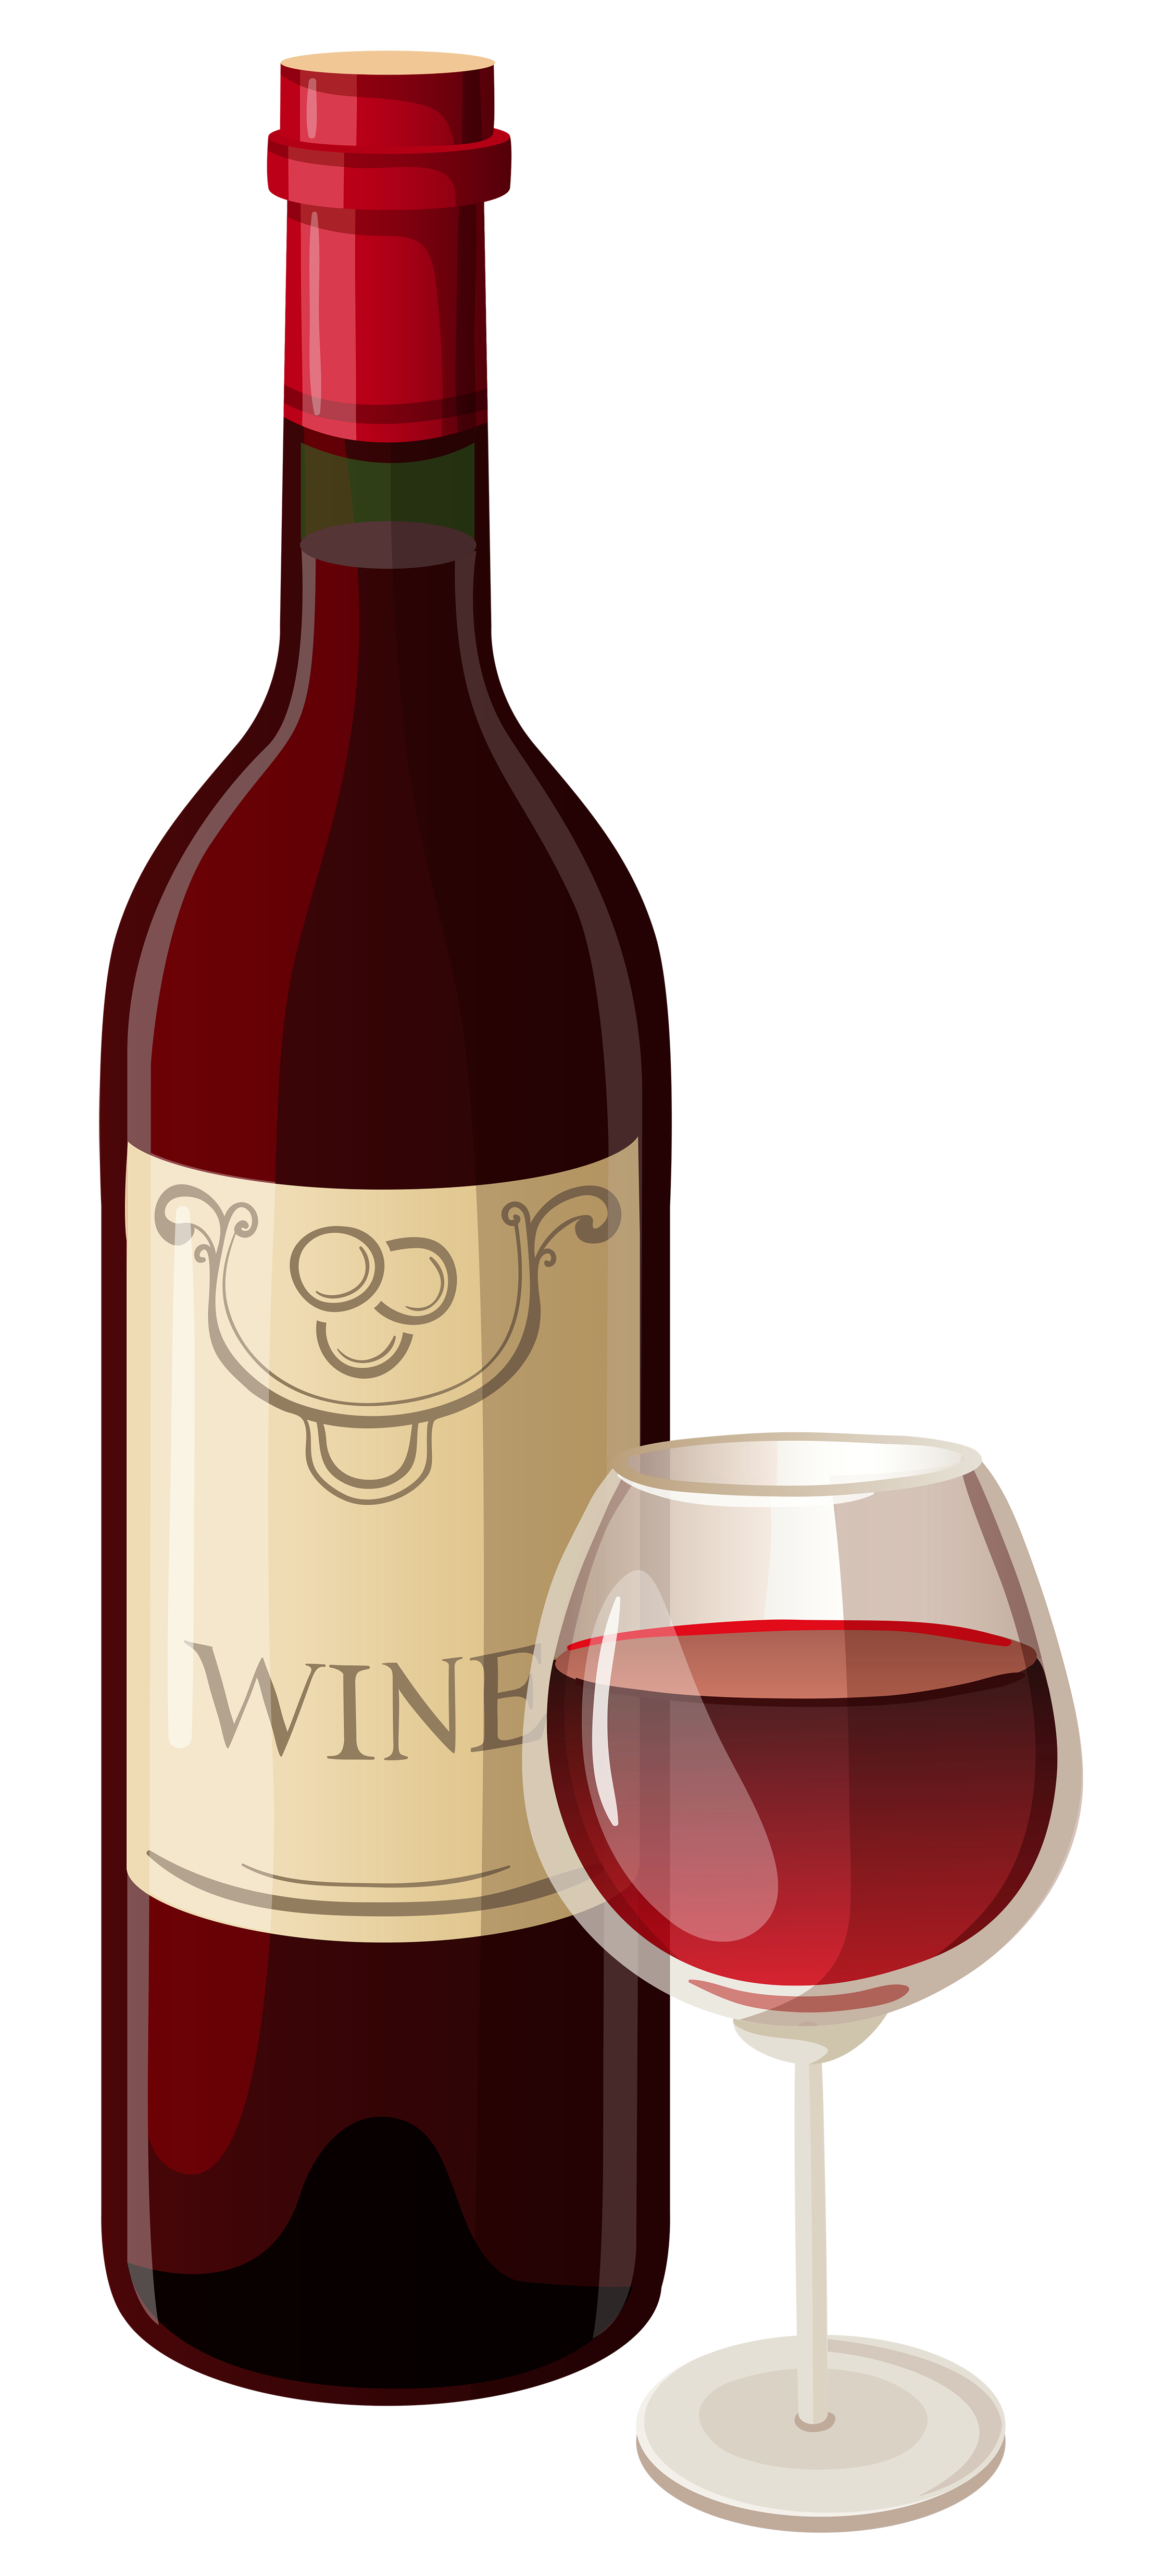 Wine bottle download wine clip art free clipart of glasses 2 4